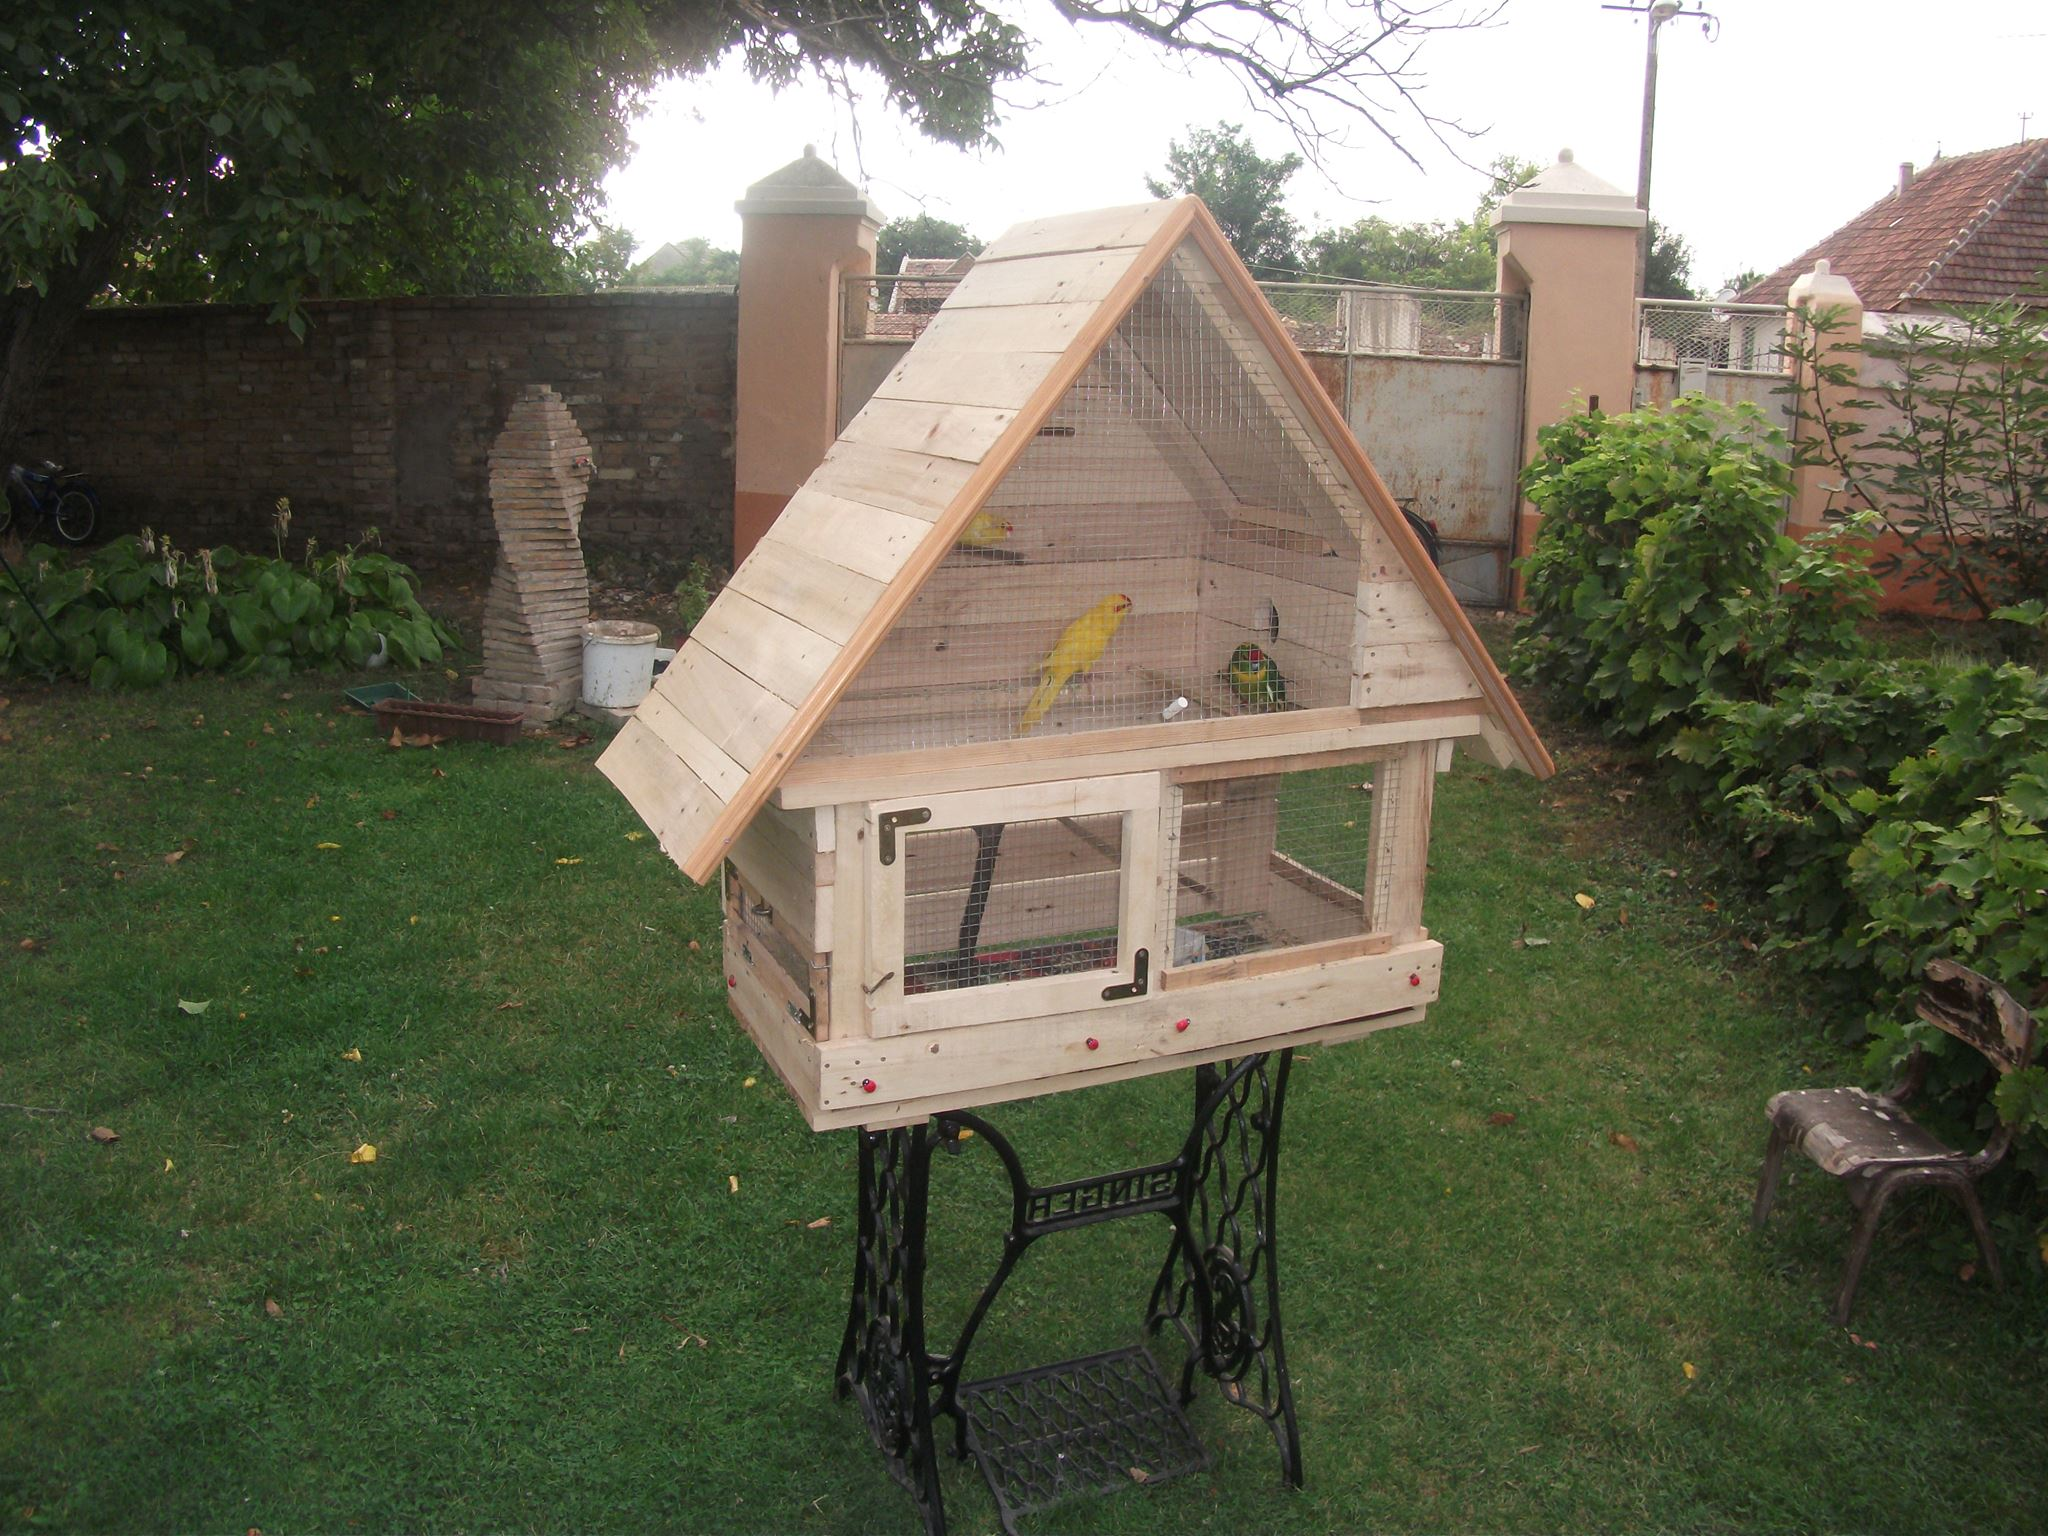 DIY Cute Birdhouse made from Wood Pallets | EASY DIY and CRAFTS